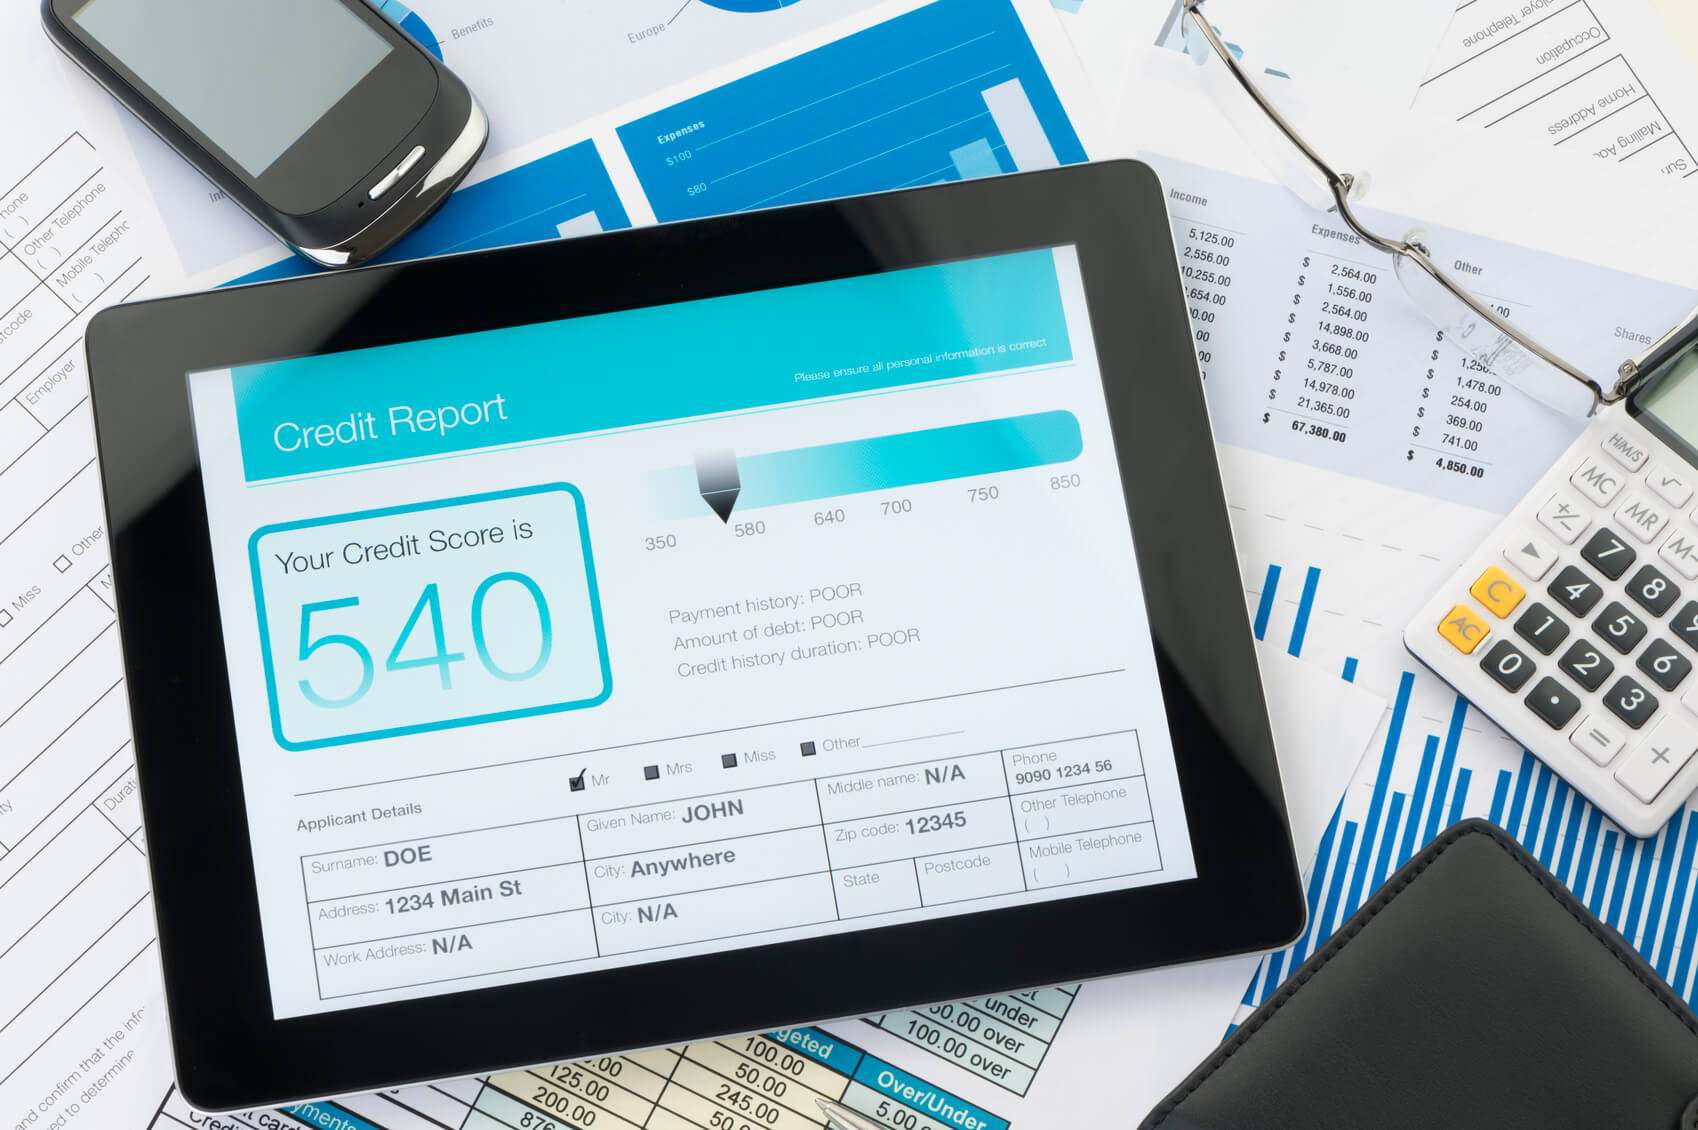 A computer tablet screen showing a poor credit score